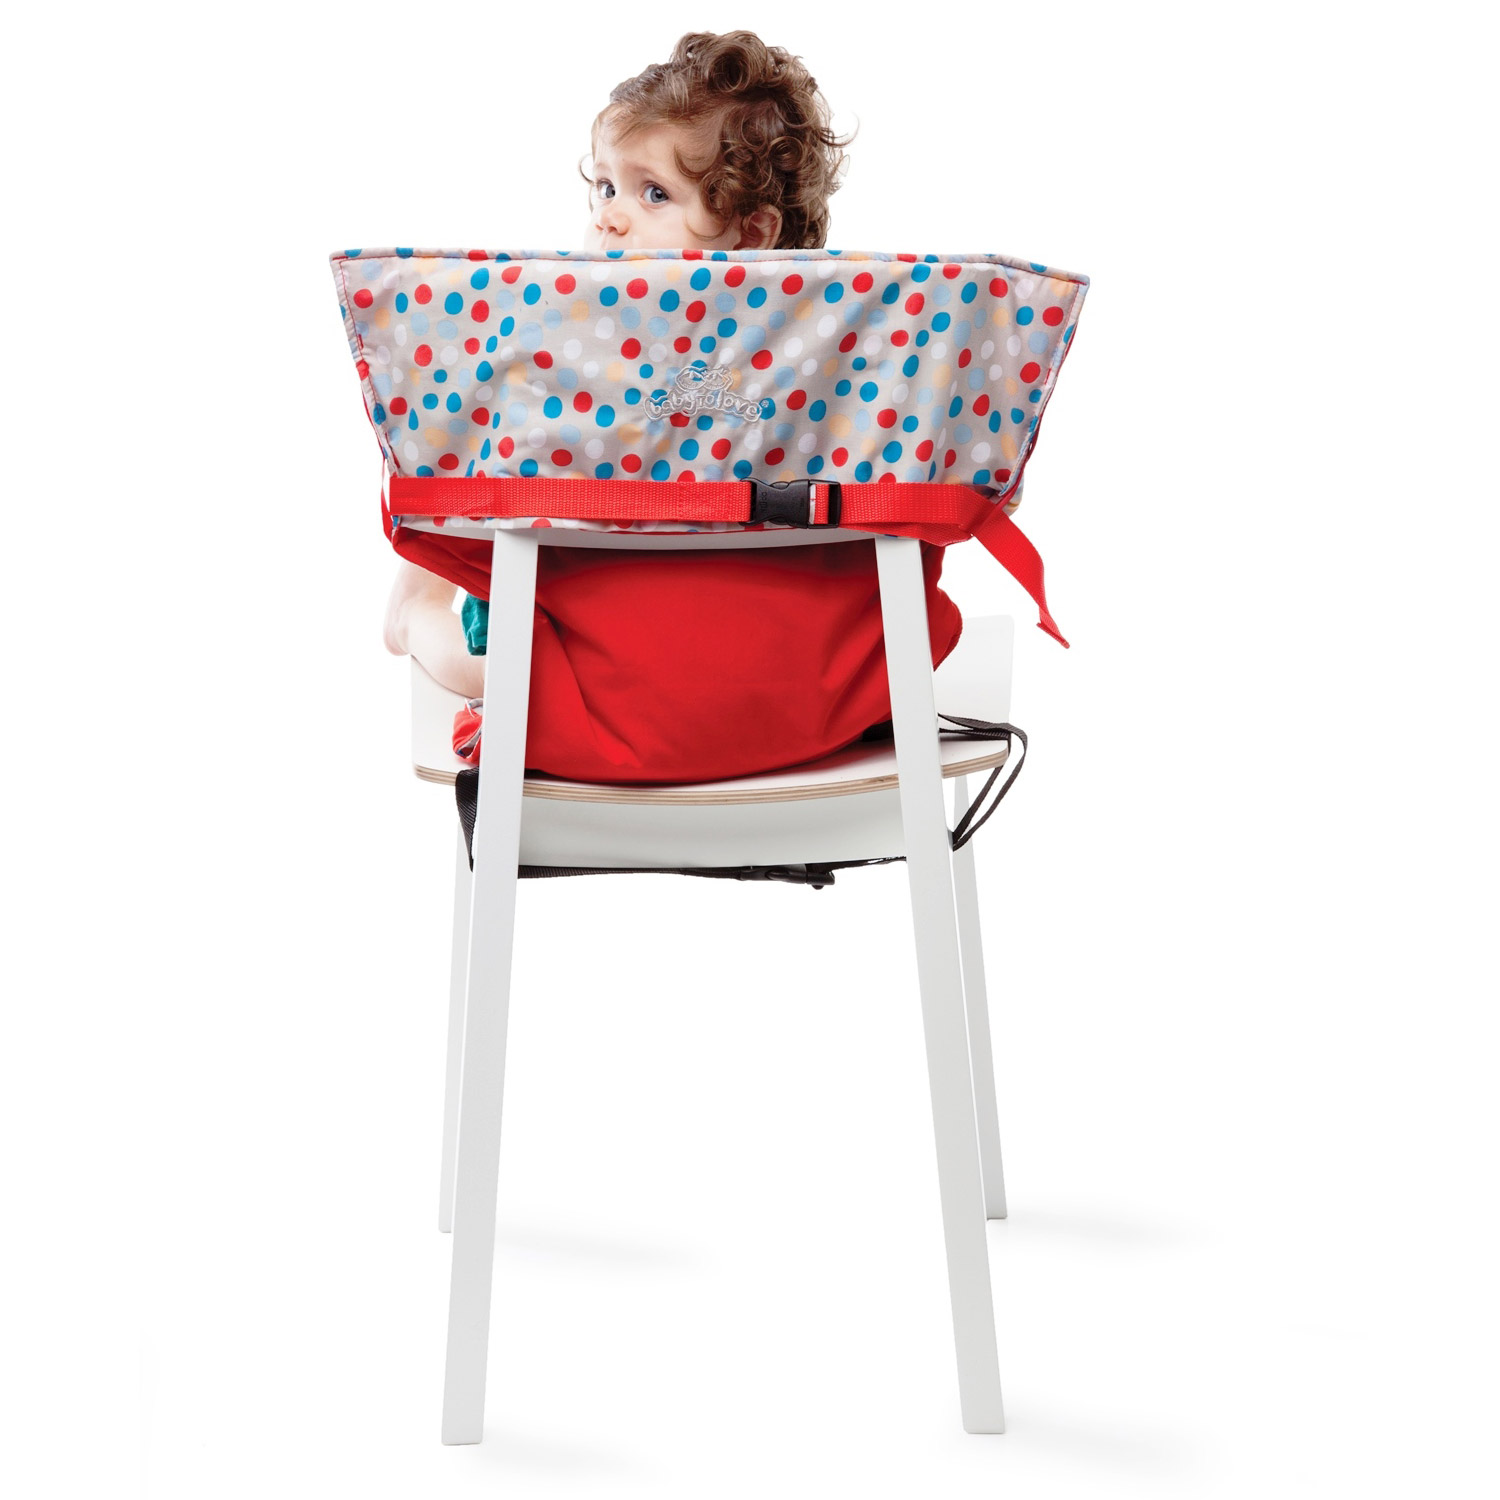 La chaise nomade de Baby to Love